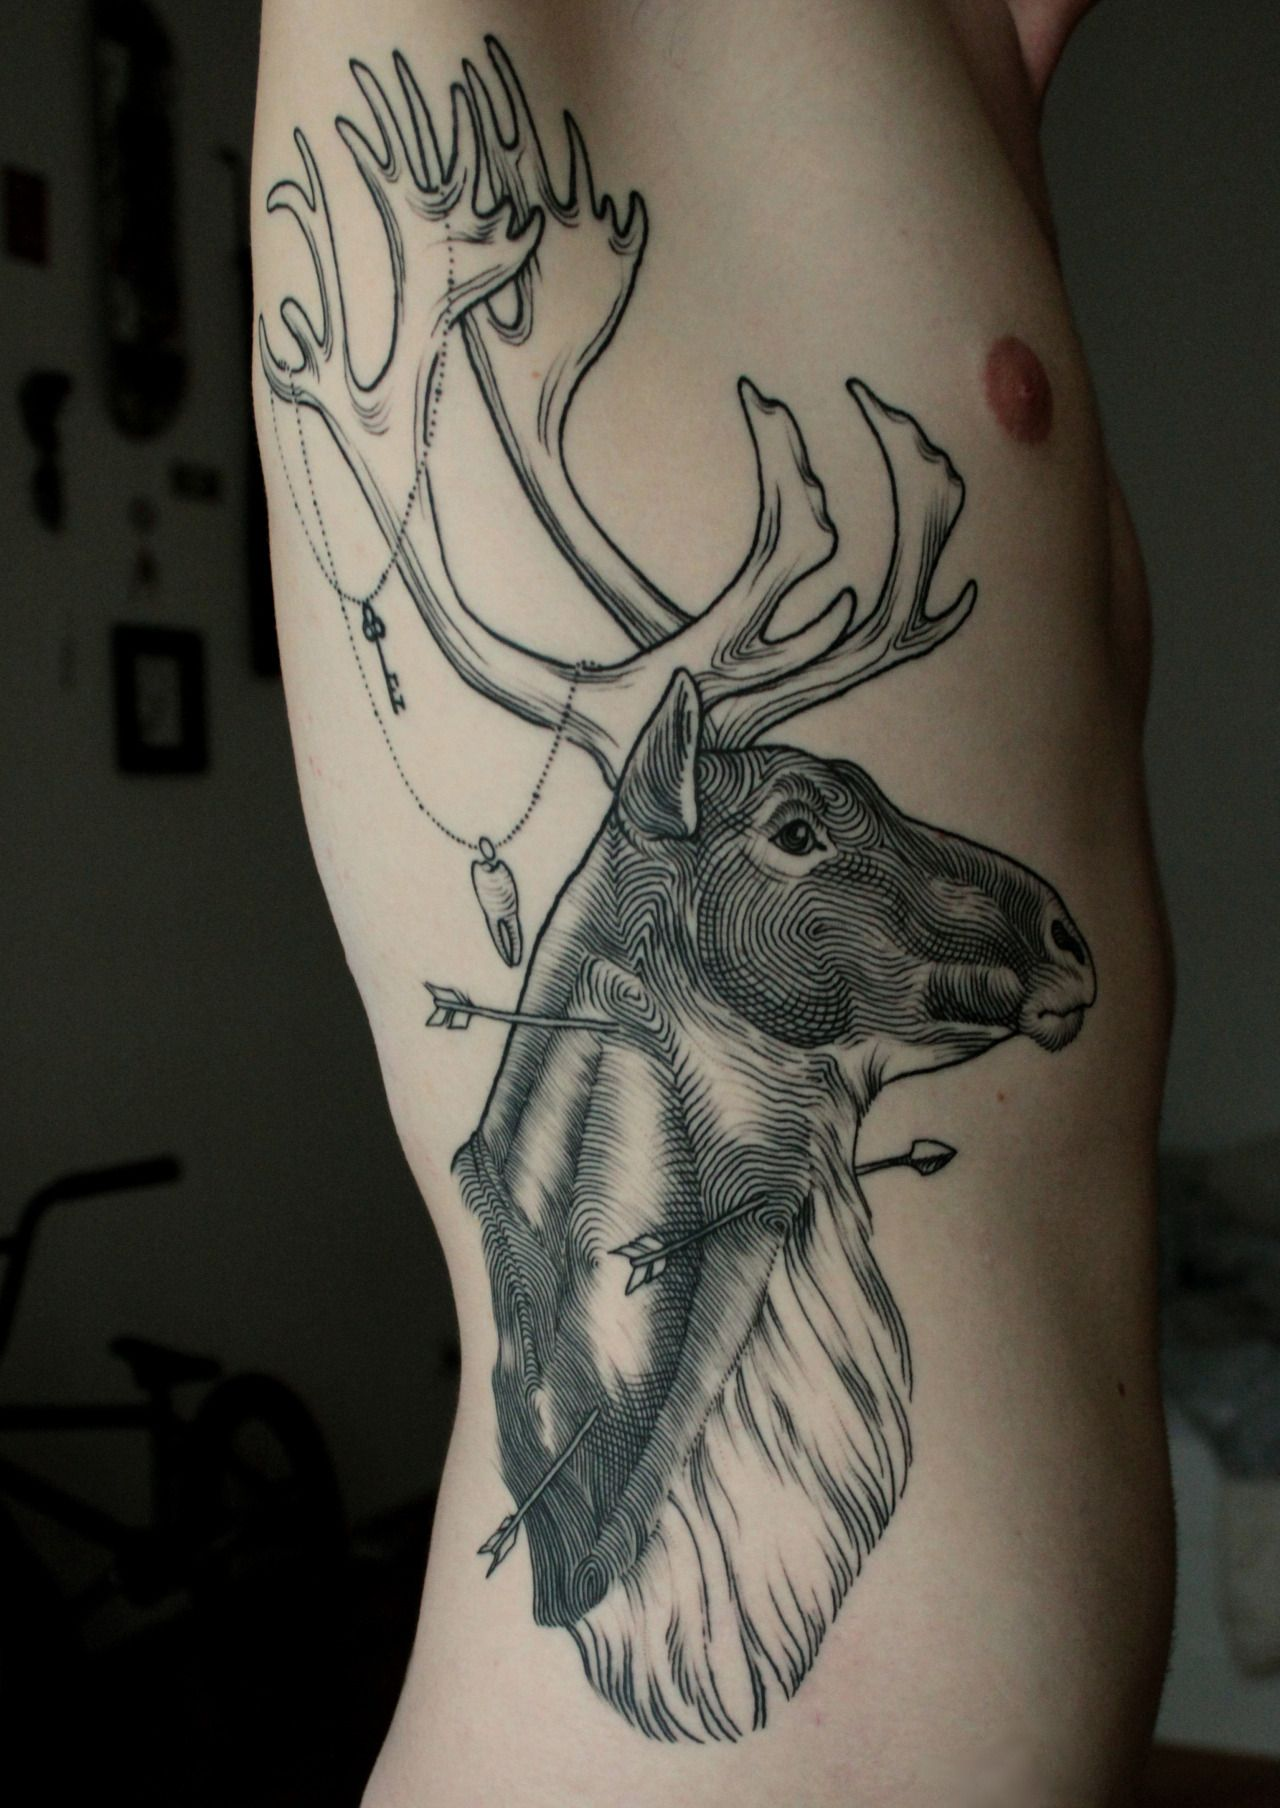 Pin by meaculpa on Tattoo Black | Pinterest | Tattoos, Deer tattoo ...